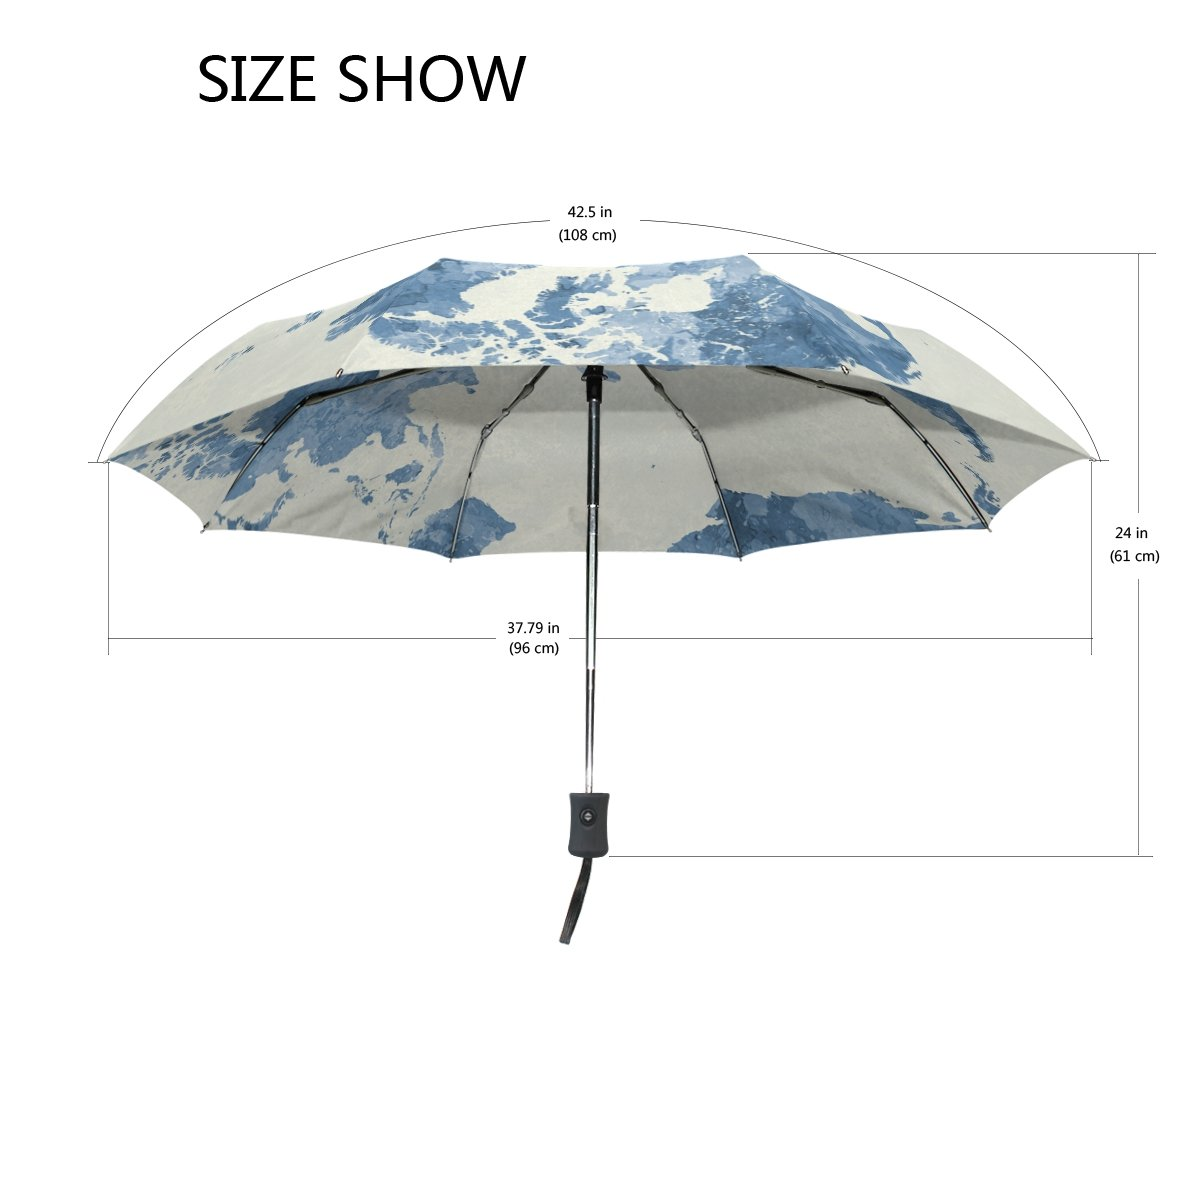 Lavovo watercolor blue world map umbrella double sided canopy auto lavovo watercolor blue world map umbrella double sided canopy auto open close foldable travel rain umbrellas amazon sports outdoors gumiabroncs Gallery